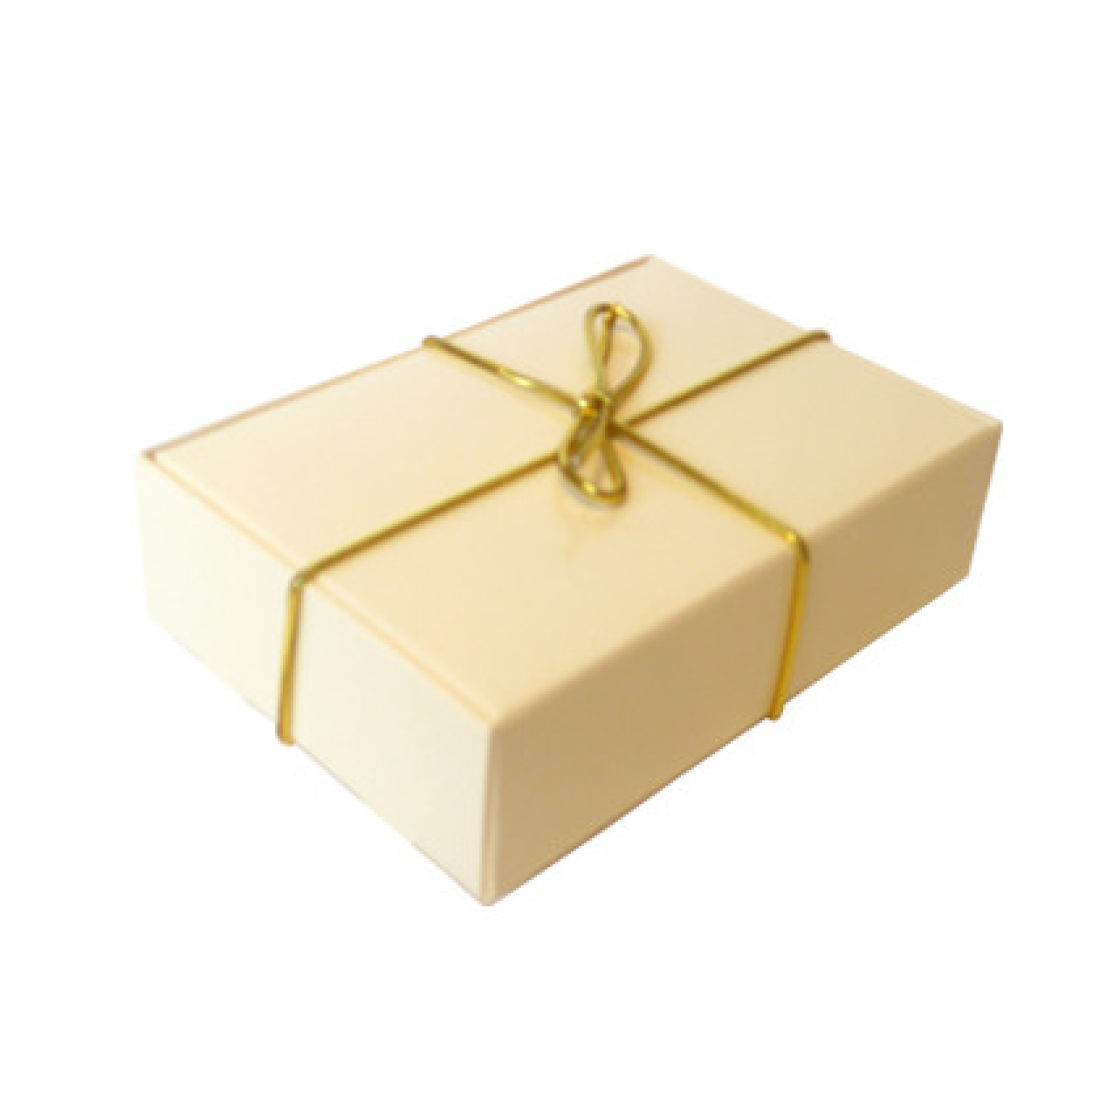 Ivory Wedding Cake Box   Pack of 6   Squires Kitchen Shop Ivory Wedding Cake Box   Pack of 6